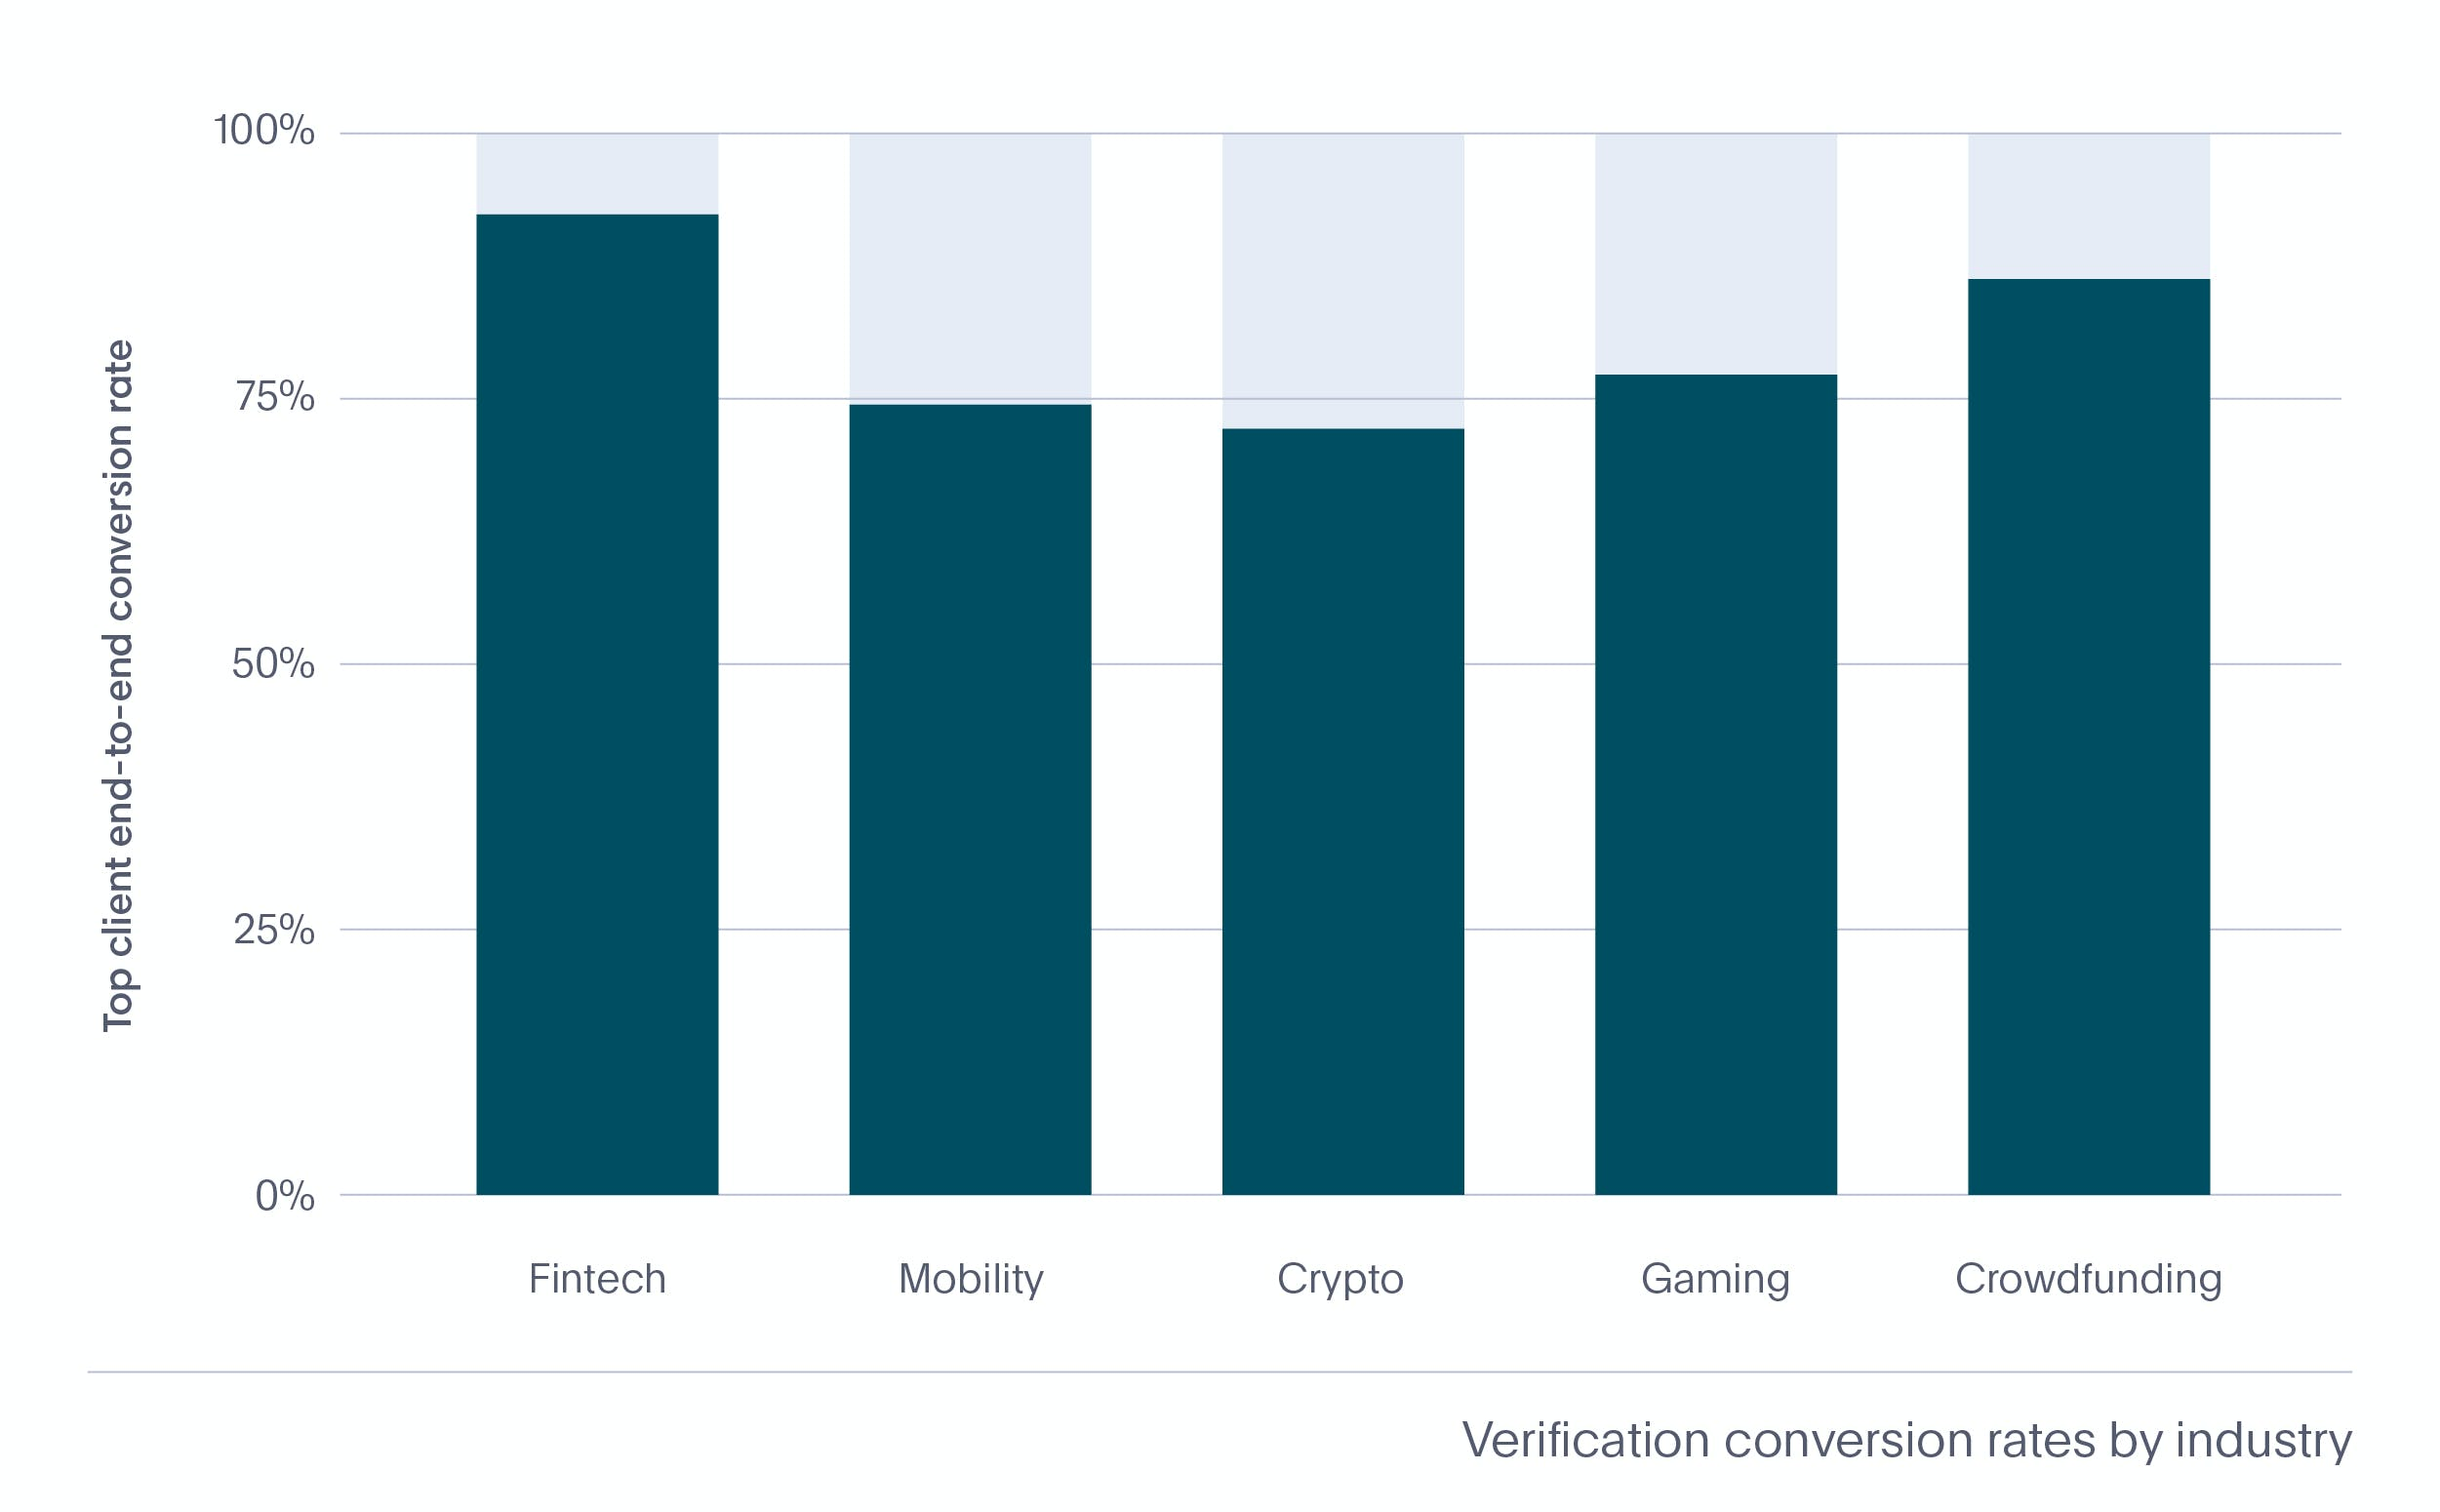 Identity verification conversion rates by industry